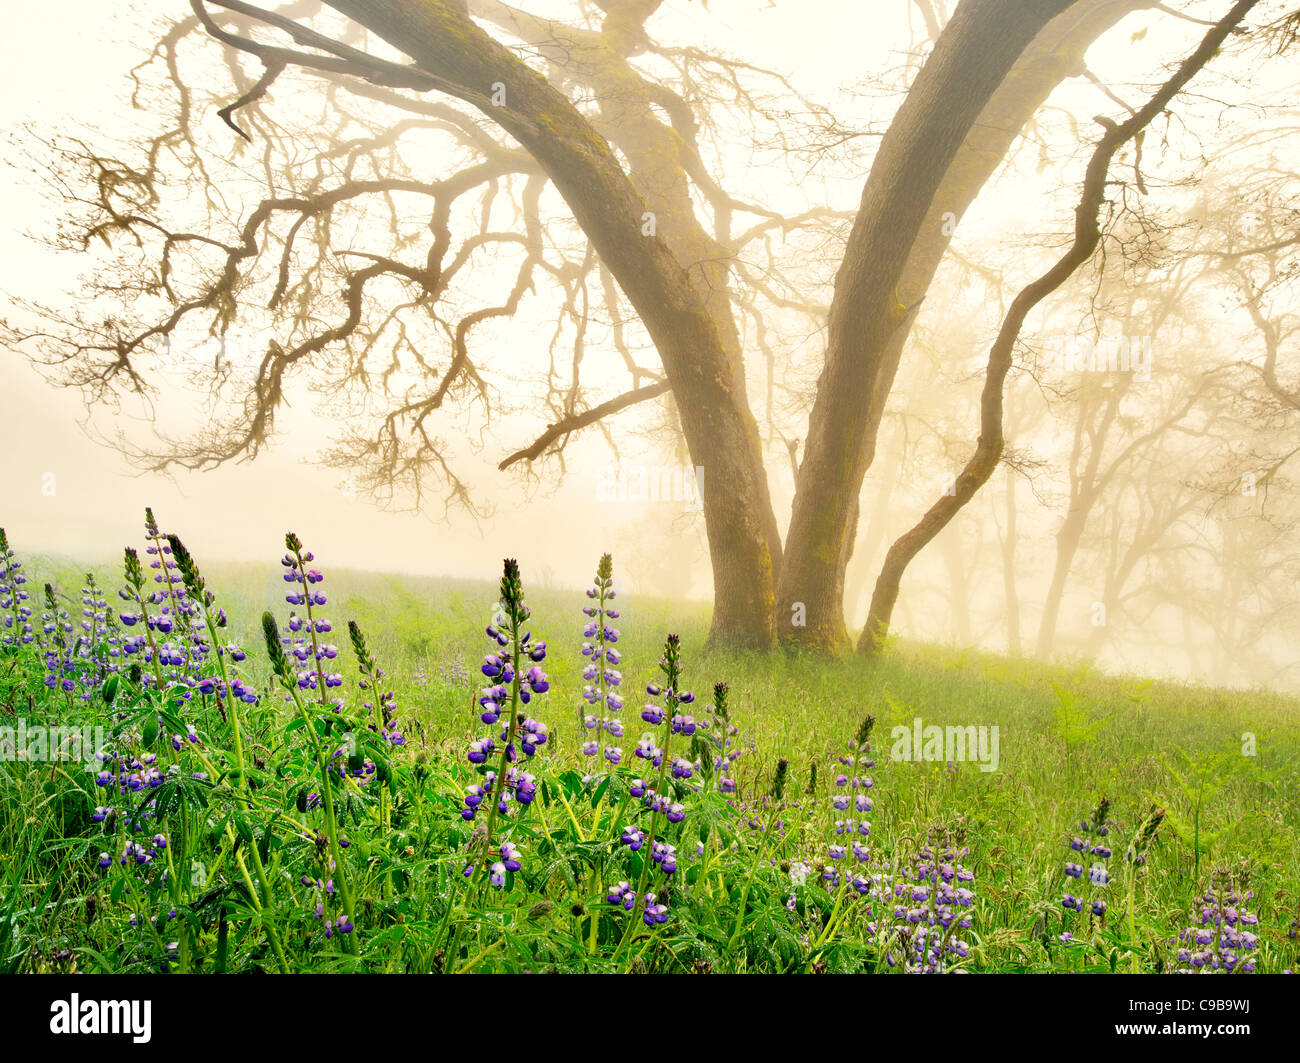 Oak tress and lupines in rain with fog. Redwood National and State Parks, California - Stock Image